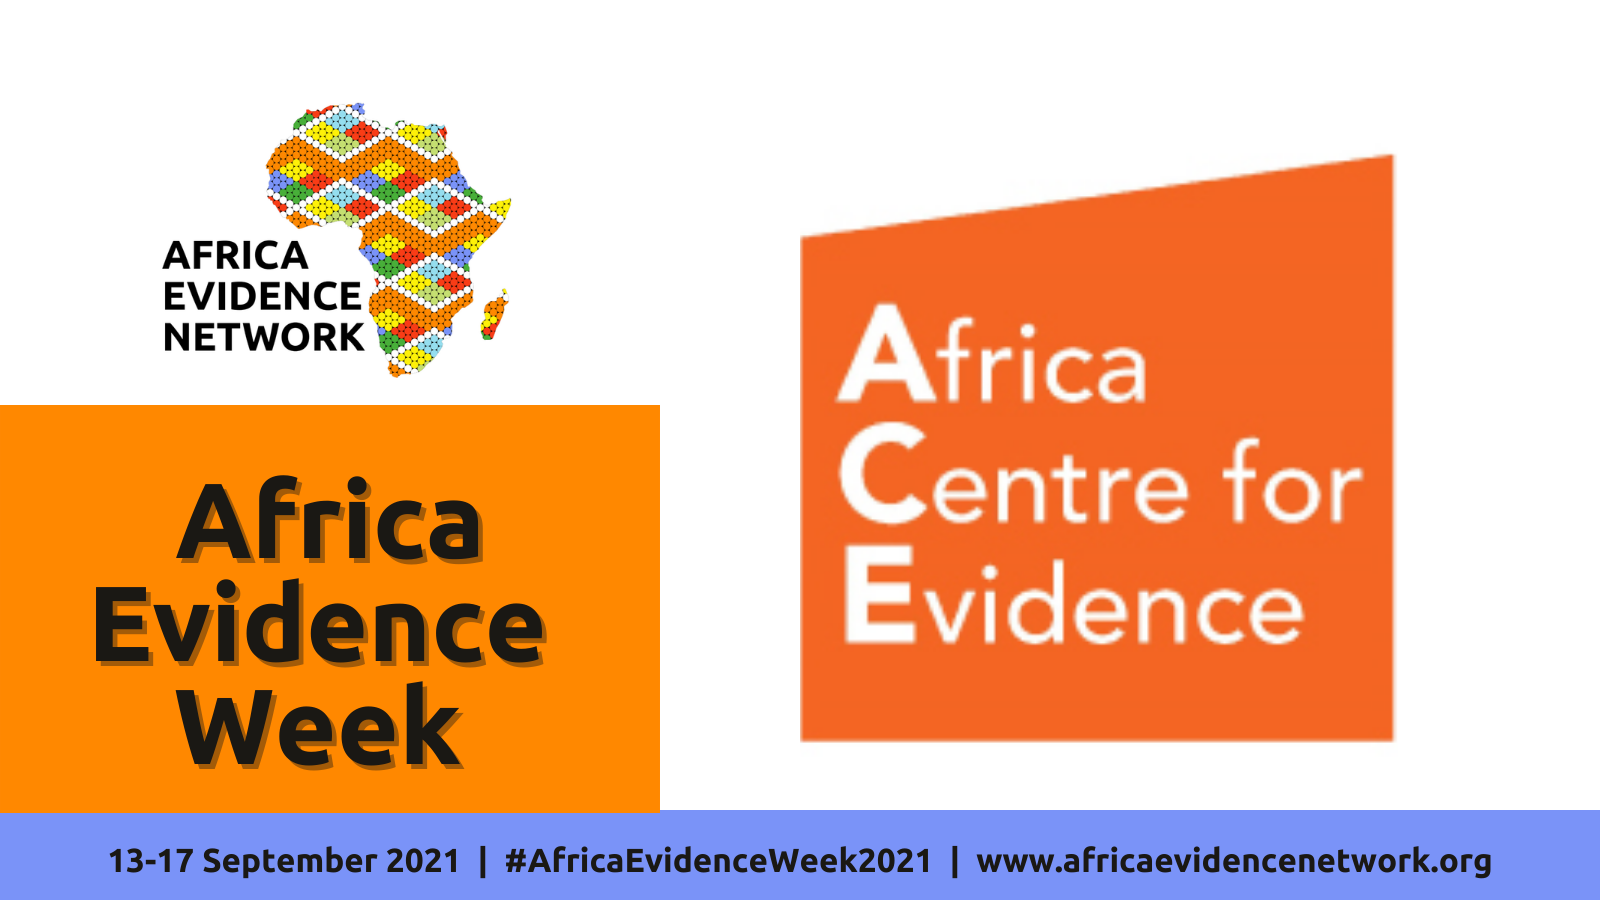 Africa Evidence Week 2021 event: Designing for equity in capacity development for EIDM in Africa: Experience sharing from Cameroon